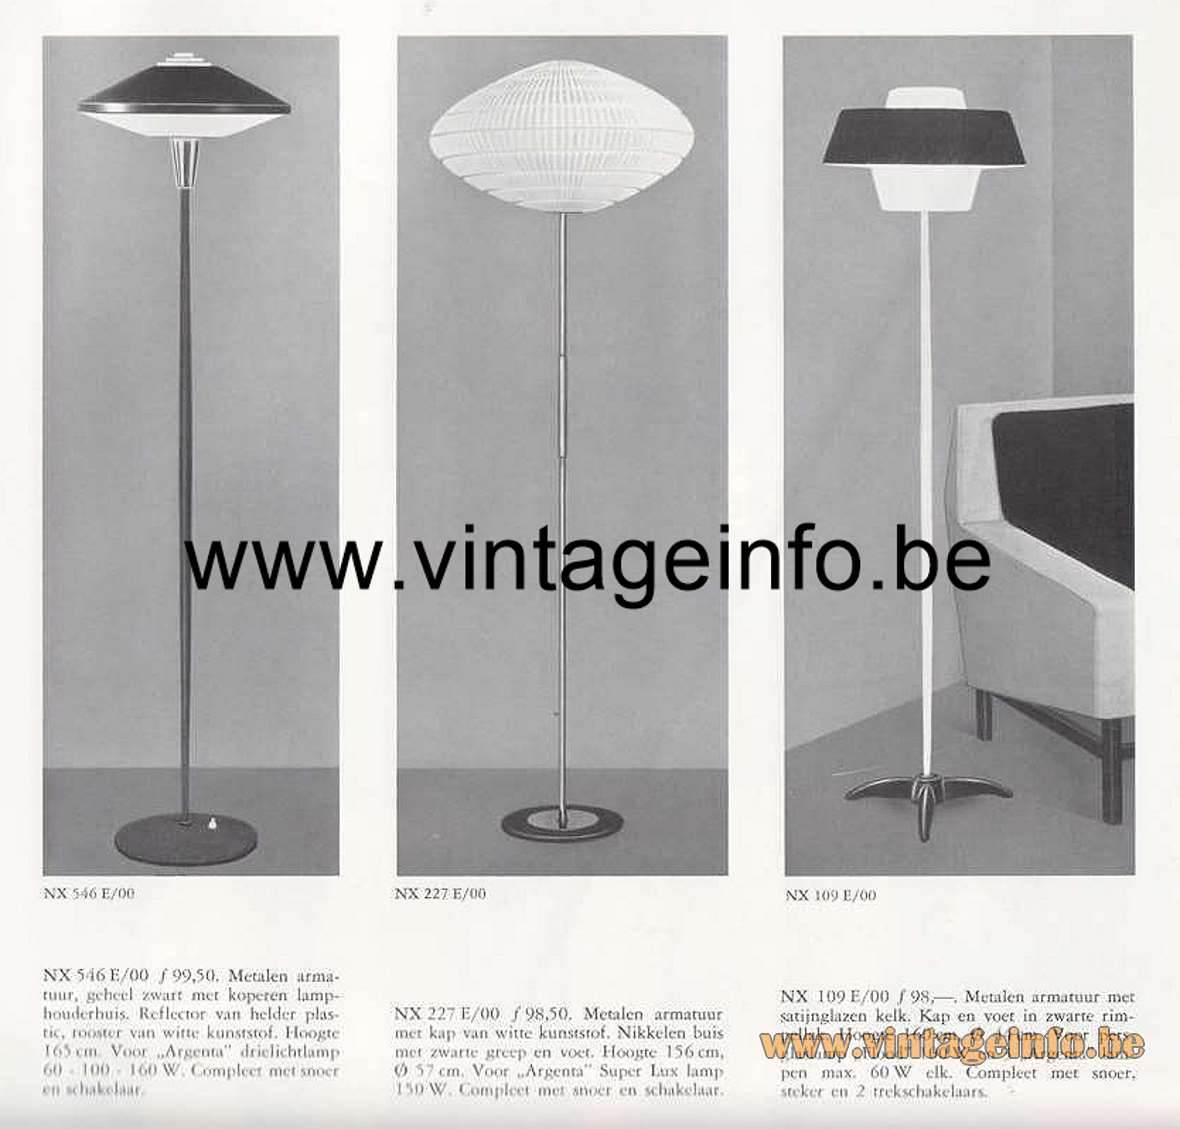 Philips NX 546 E/00 Floor Lamp round UFO lampshade brass round base plastic diffuser 1950s 1960s